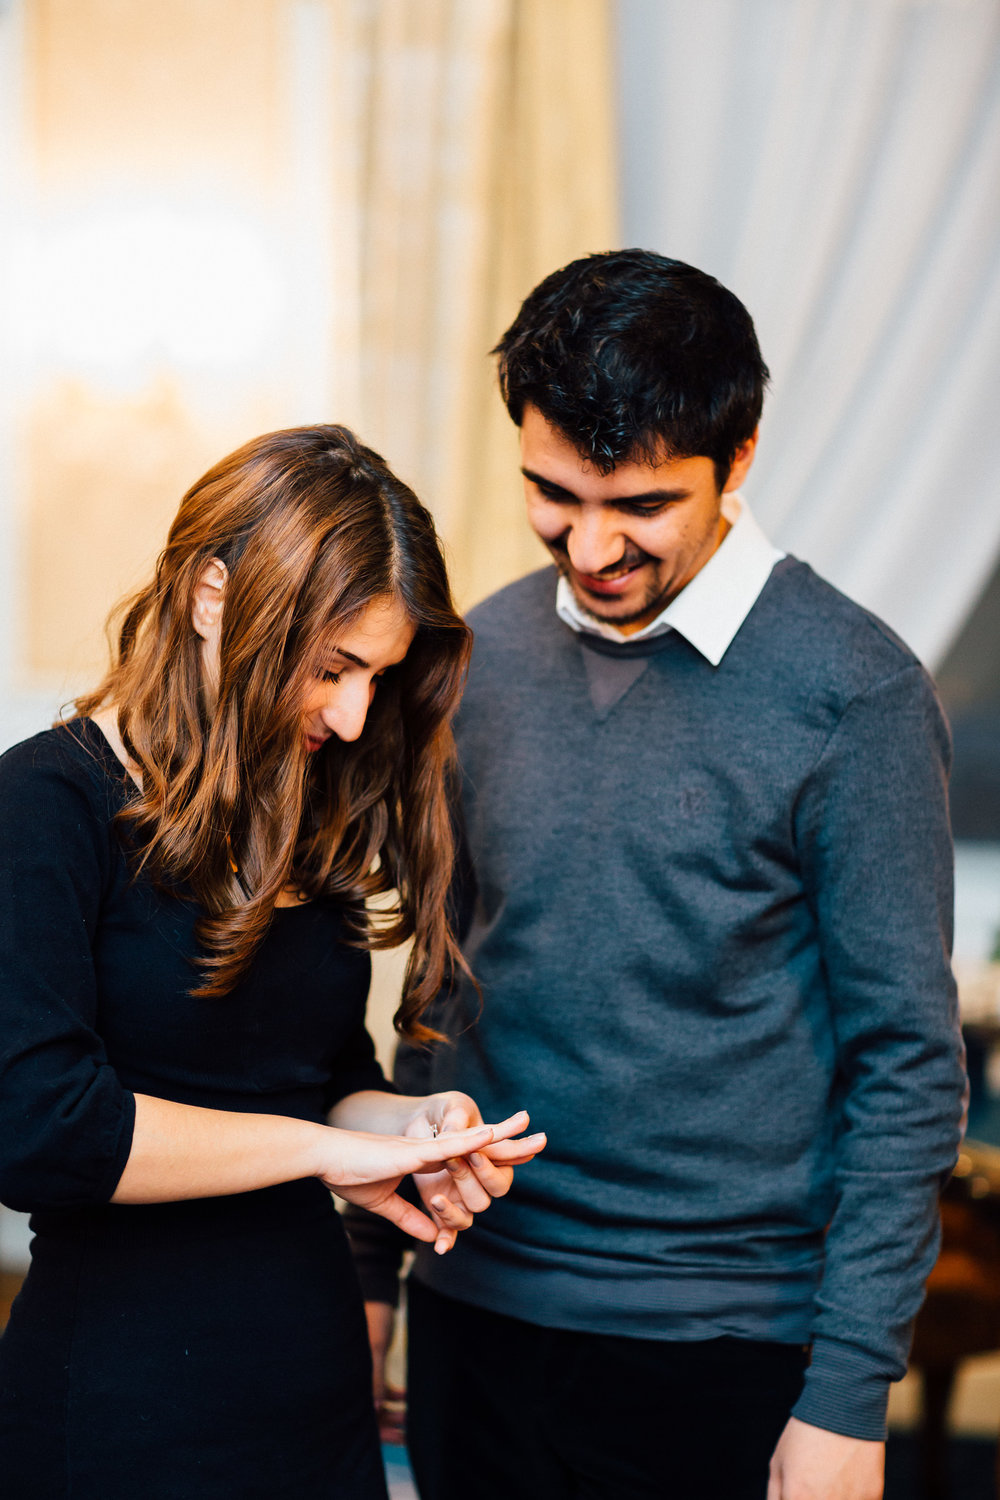 Turkish Christmas marriage proposal abroad at Hotel Imperial Vienna with concept and coordination by international proposal planner Vienna Austria